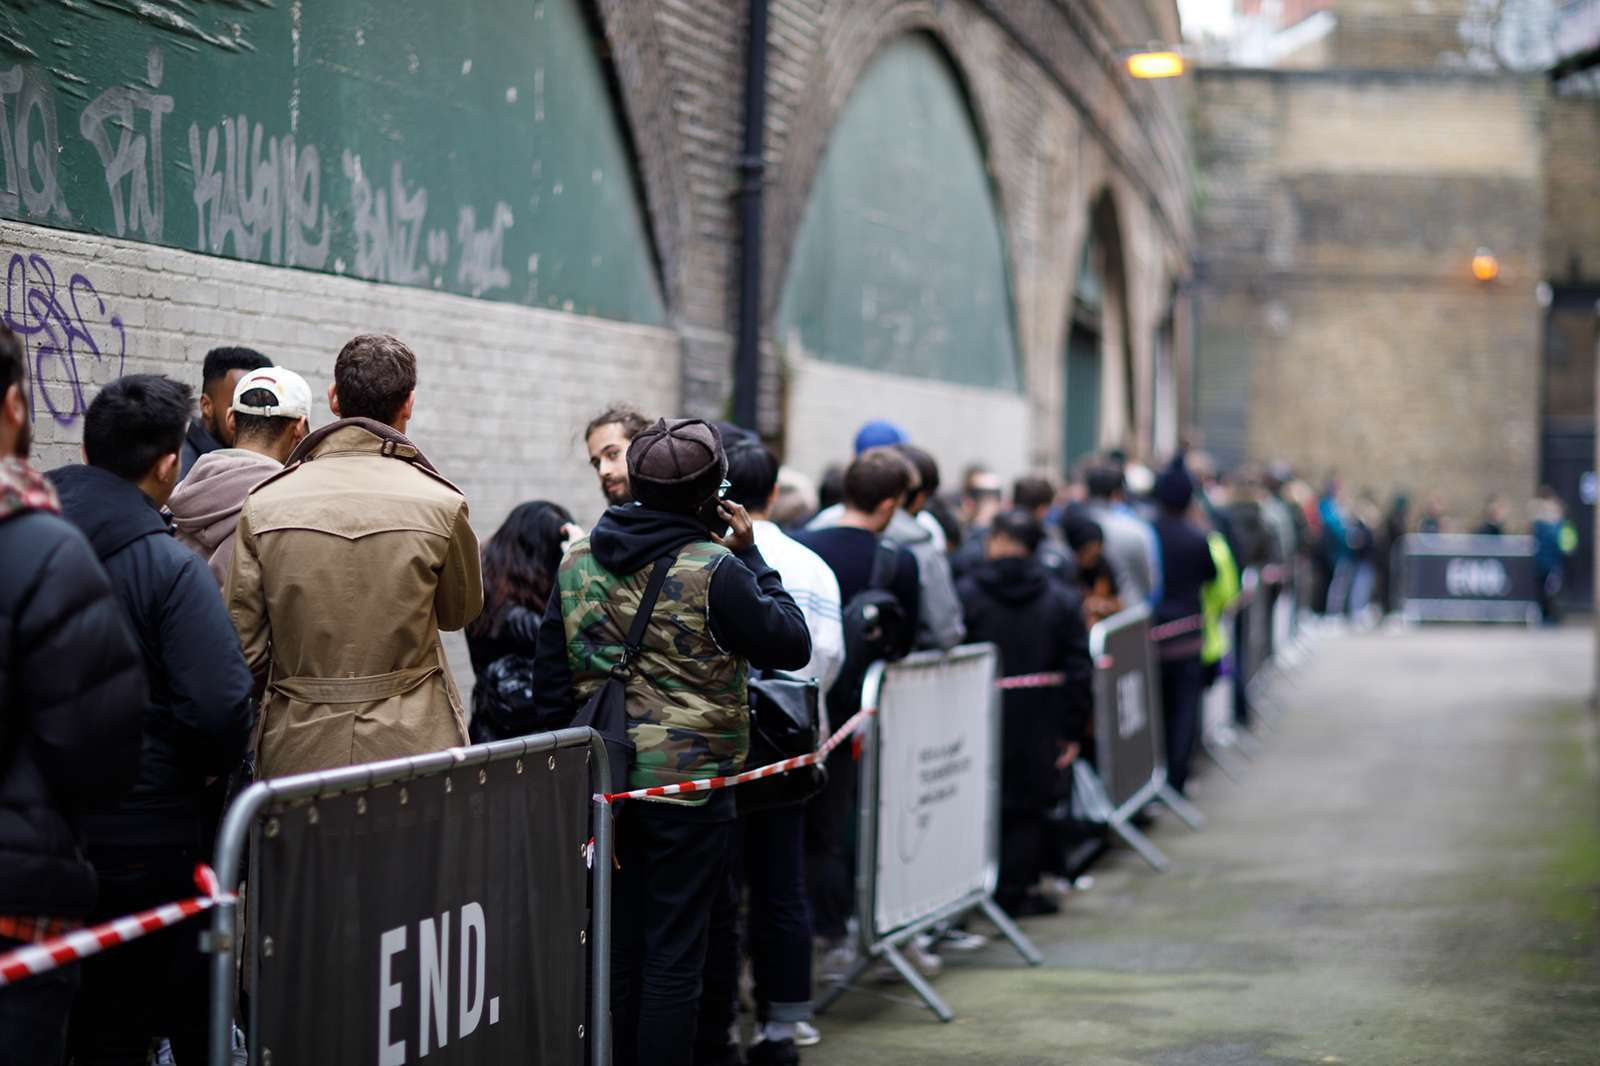 END. THE TEN : Nike X Virgil Abloh London Pop Up Shop